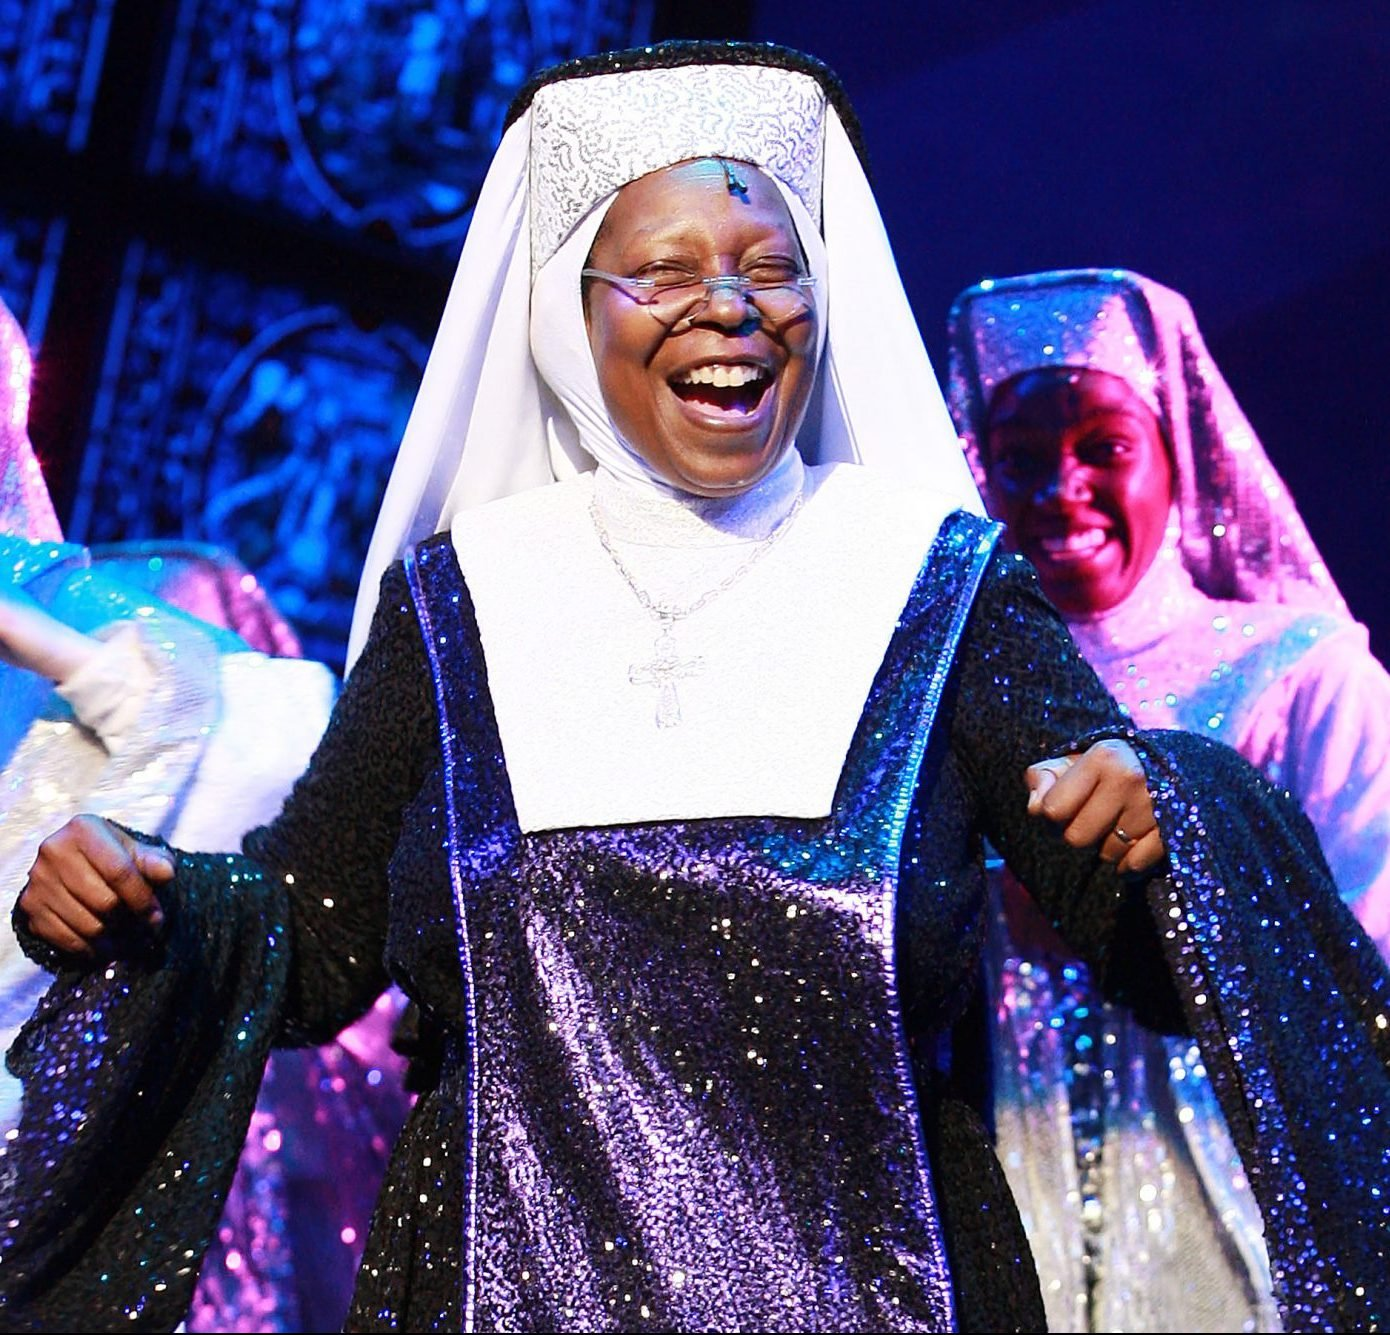 1 20 e1605872630726 We're Testifying With 20 Facts About Sister Act